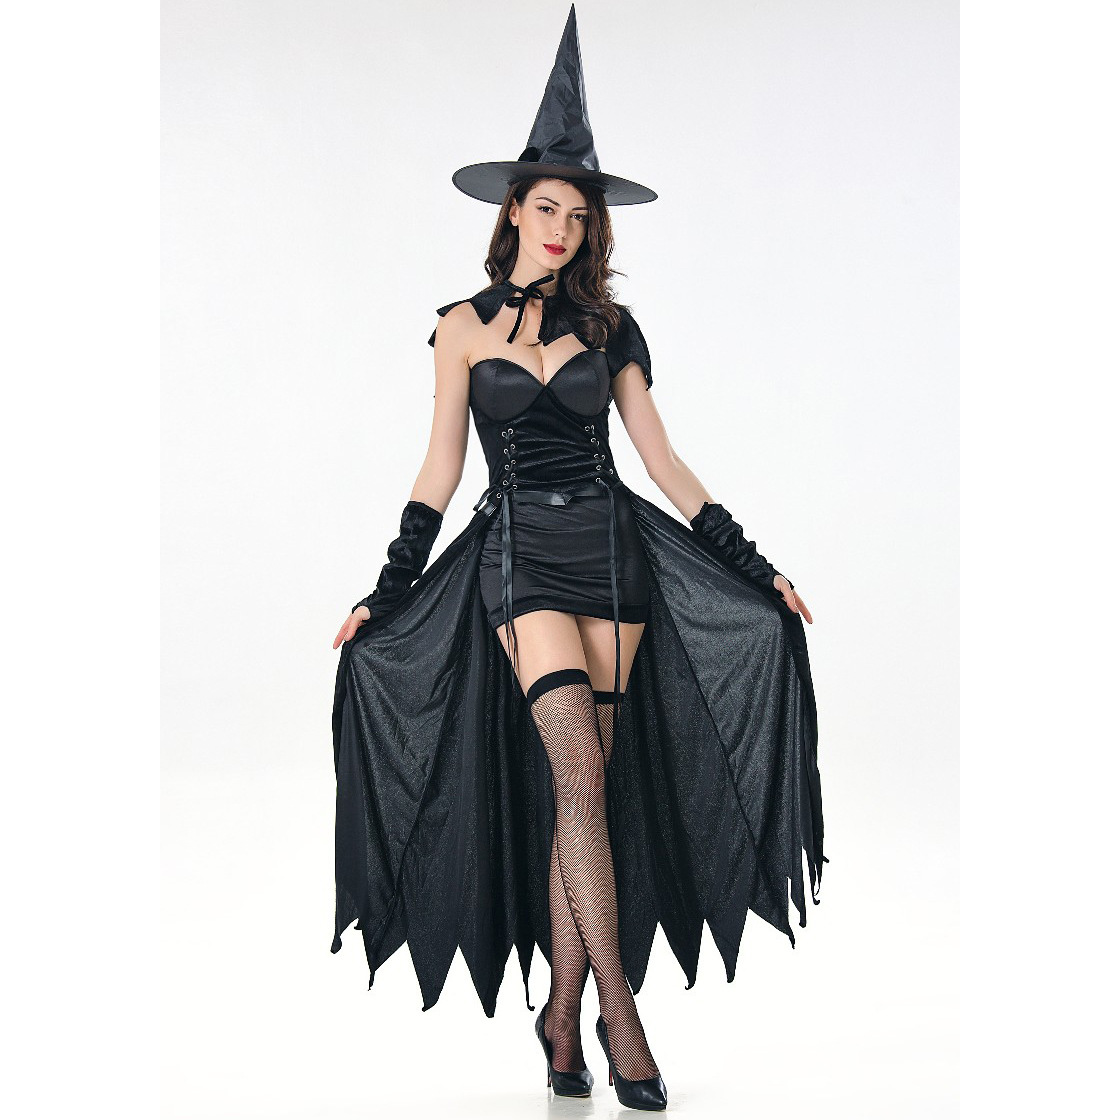 Dancing Stage <font><b>Costumes</b></font> <font><b>Halloween</b></font> <font><b>Sexy</b></font> Witch <font><b>Costume</b></font> Role Play Makeup Ball Witch Wizard <font><b>Costume</b></font> Sportswear image